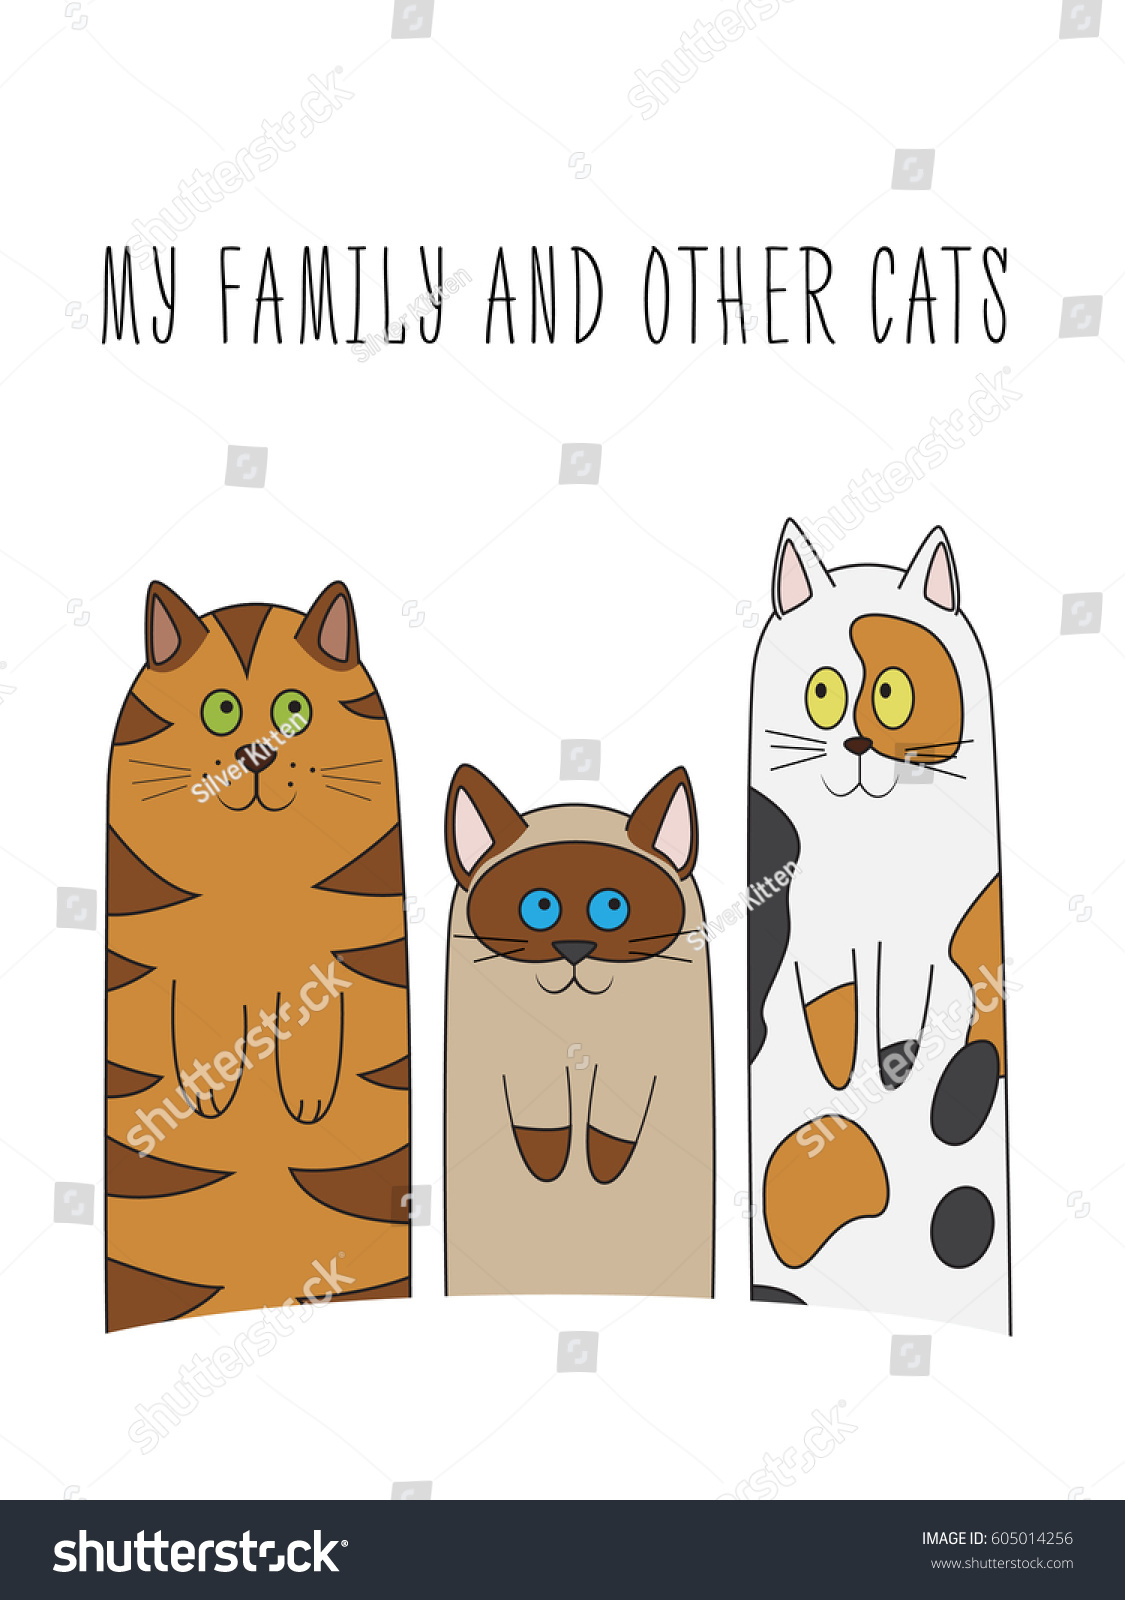 Funny Cartoon Print With A Family Of Various Cats And The Inscription My